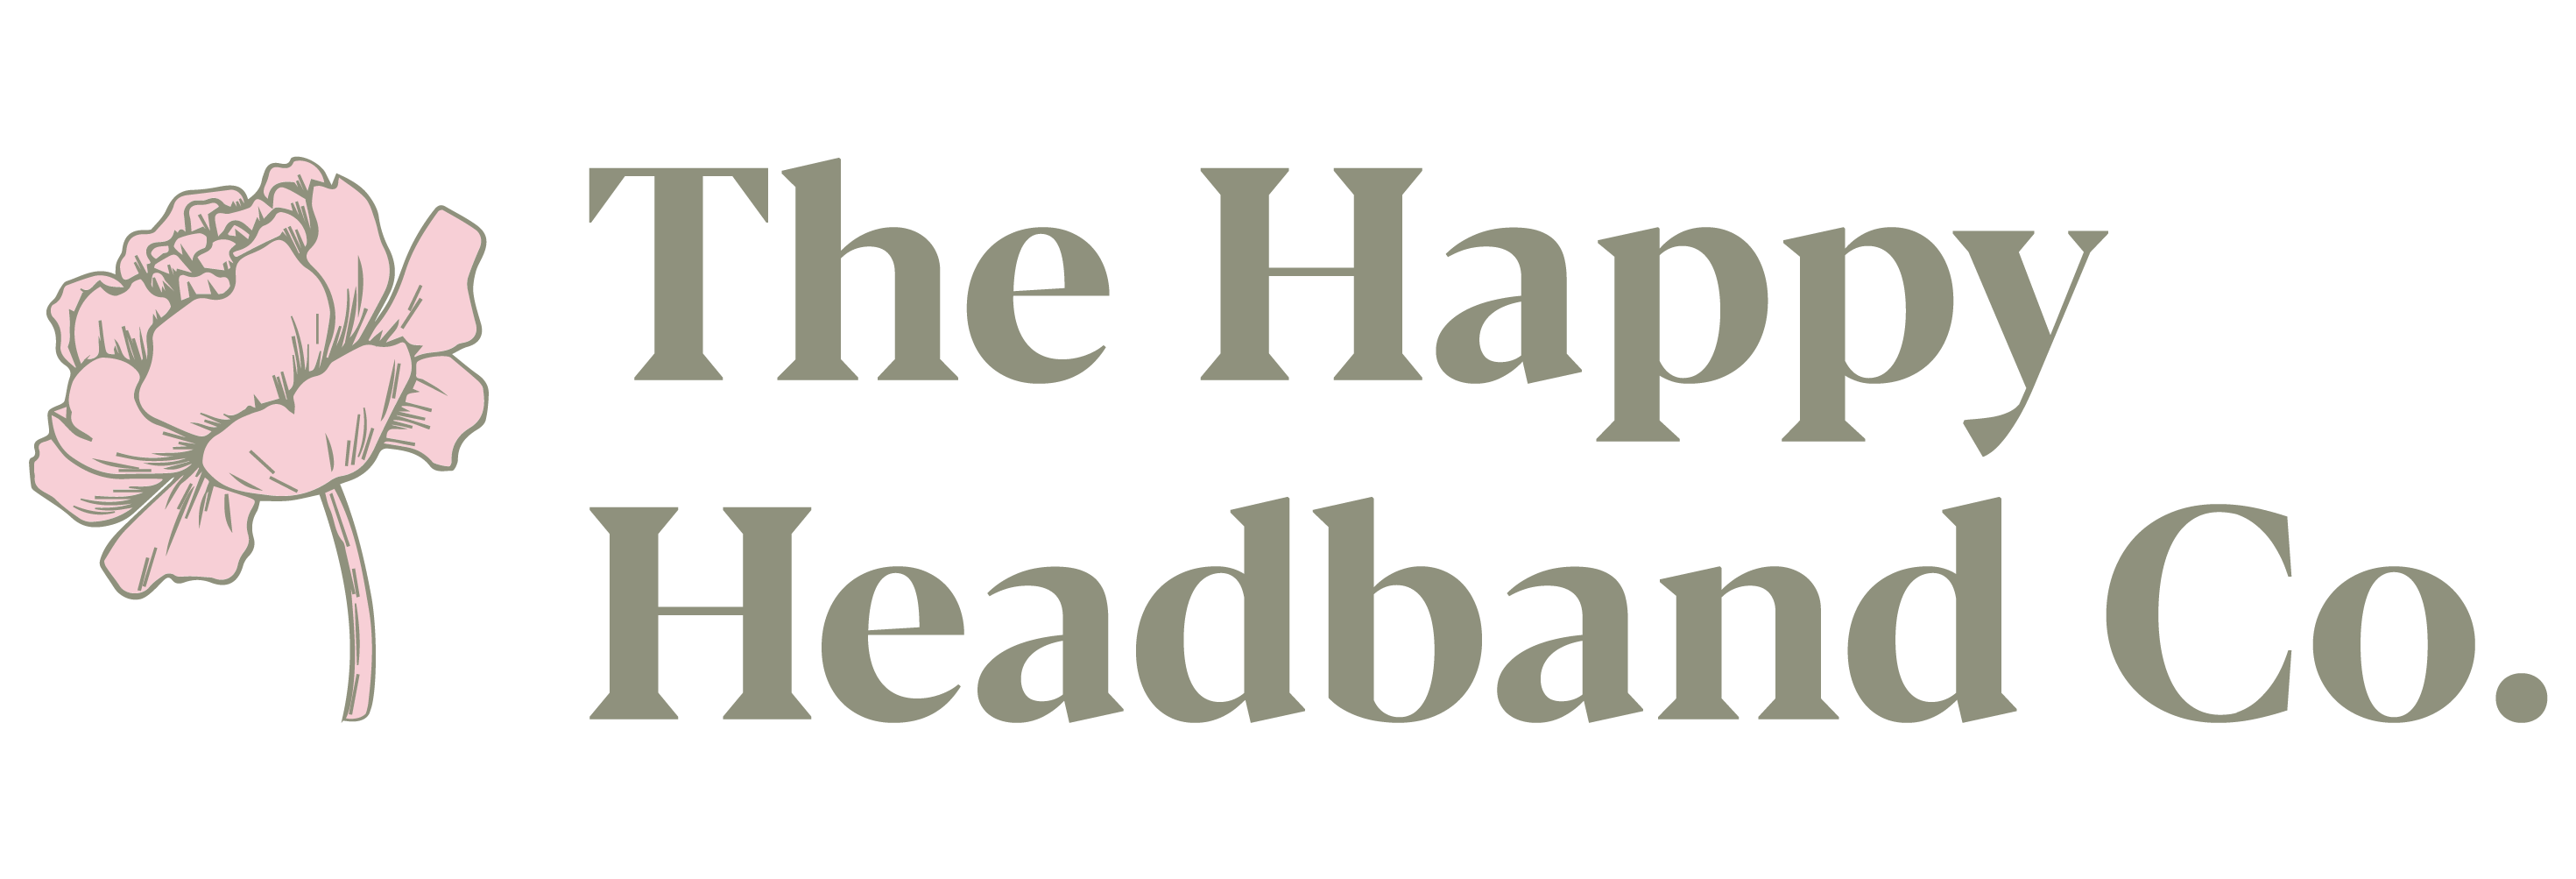 The Happy Headband Co